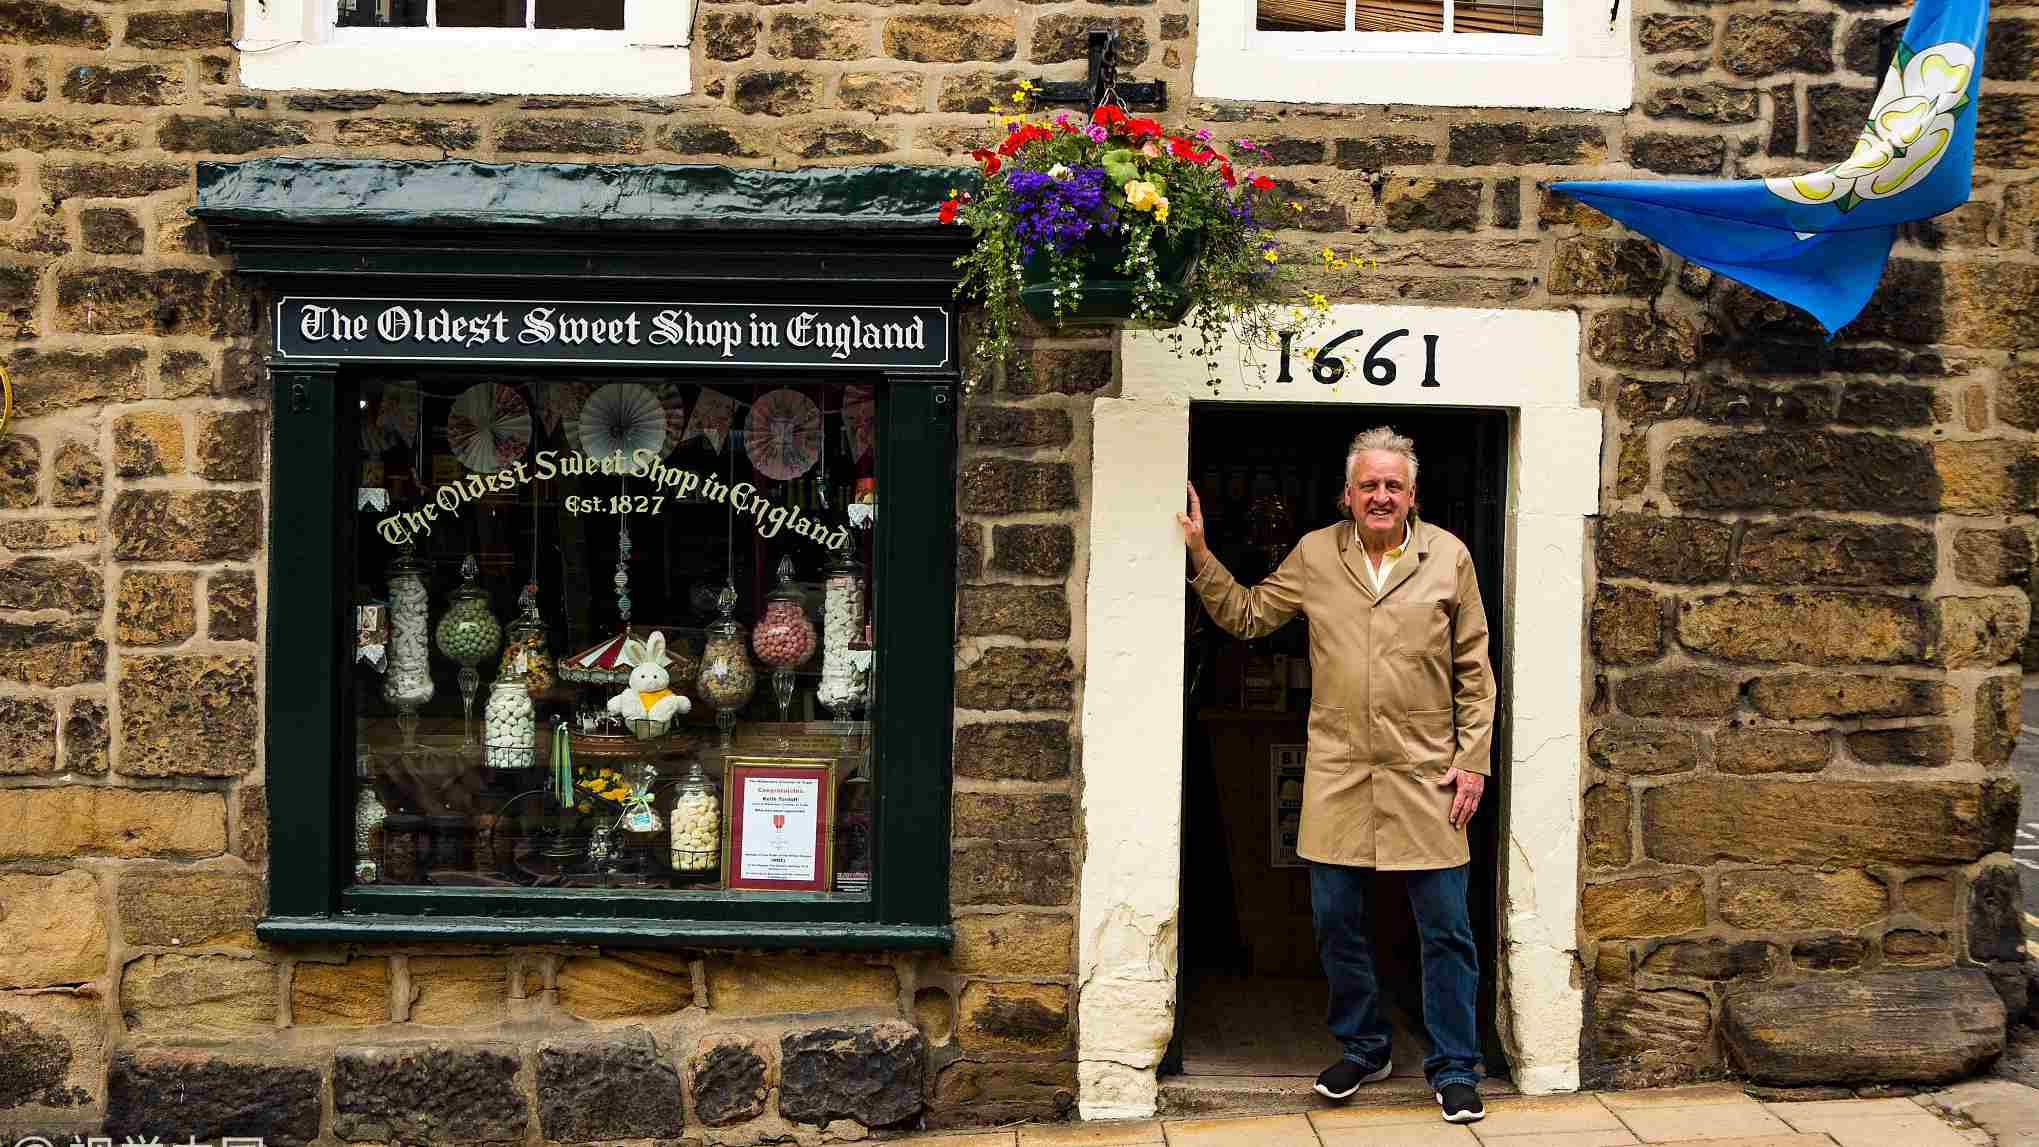 A glimpse of The Oldest Sweet Shop in England